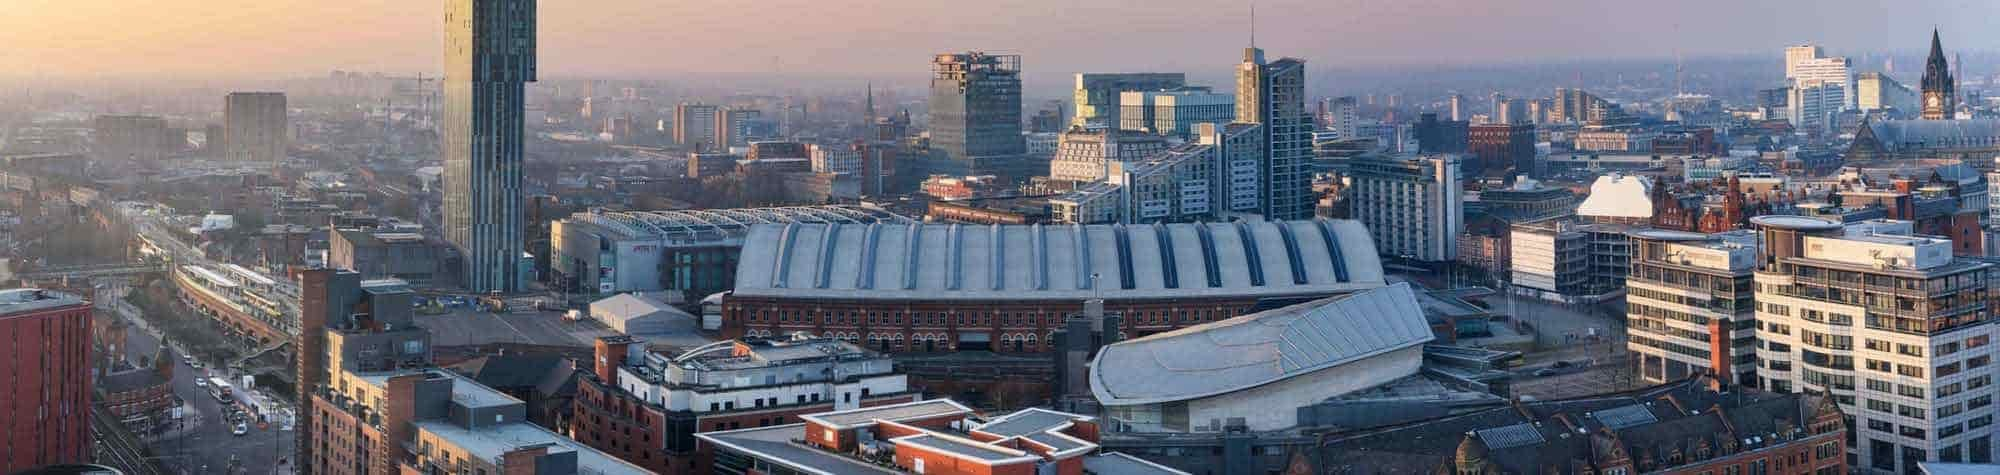 Manchester Recruitment Agency Header Image. Featuring panoramic view of Manchester city centre at sunset, with the Hilton hotel and other landmark buildings. Manchester is home to one of Search Consultancy's exceptional recruitment agencies in England.